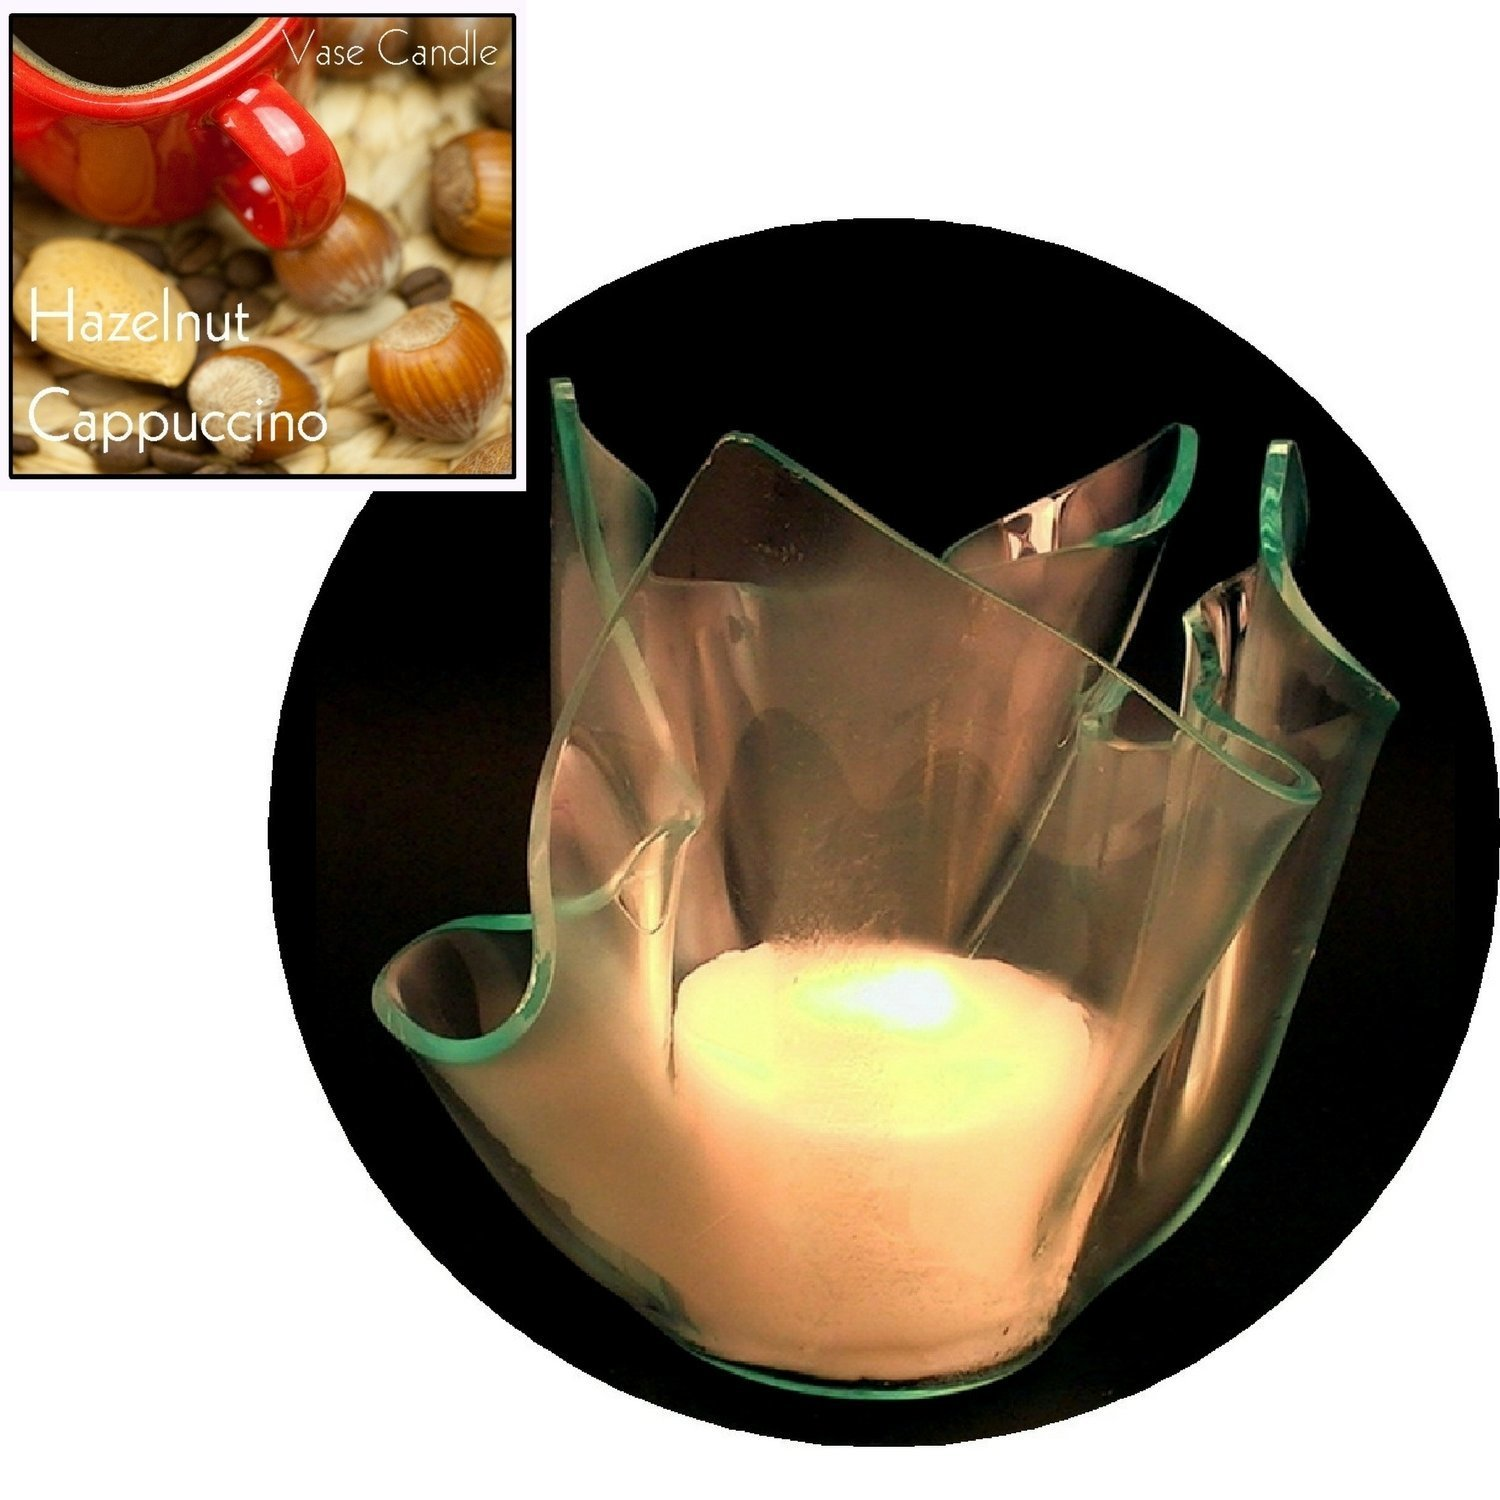 3 Hazelnut Cappuccino Candle Refills | Clear Satin Vase